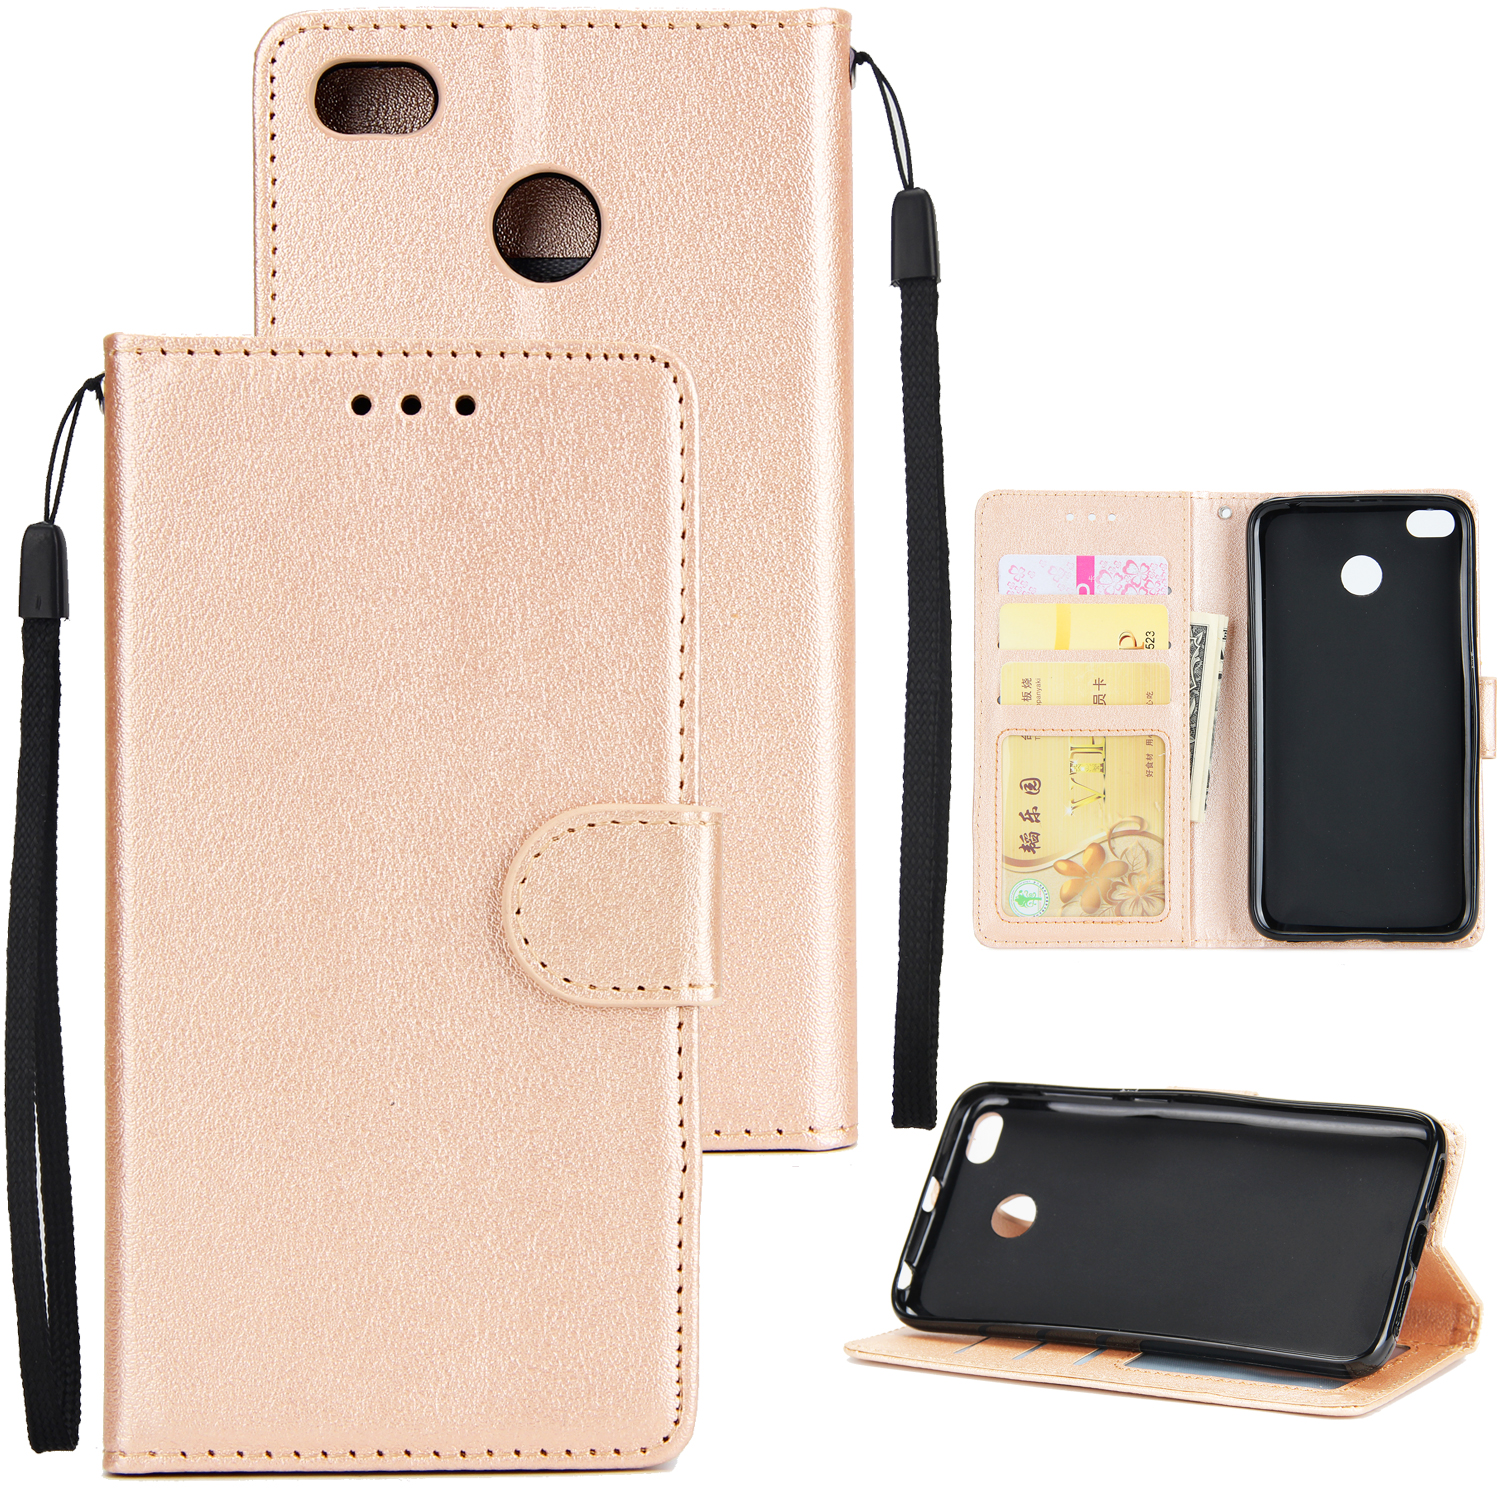 Ultra Slim Shockproof Full Protective Case with Card Wallet Slot for Xiaomi Redmi 4X Golden